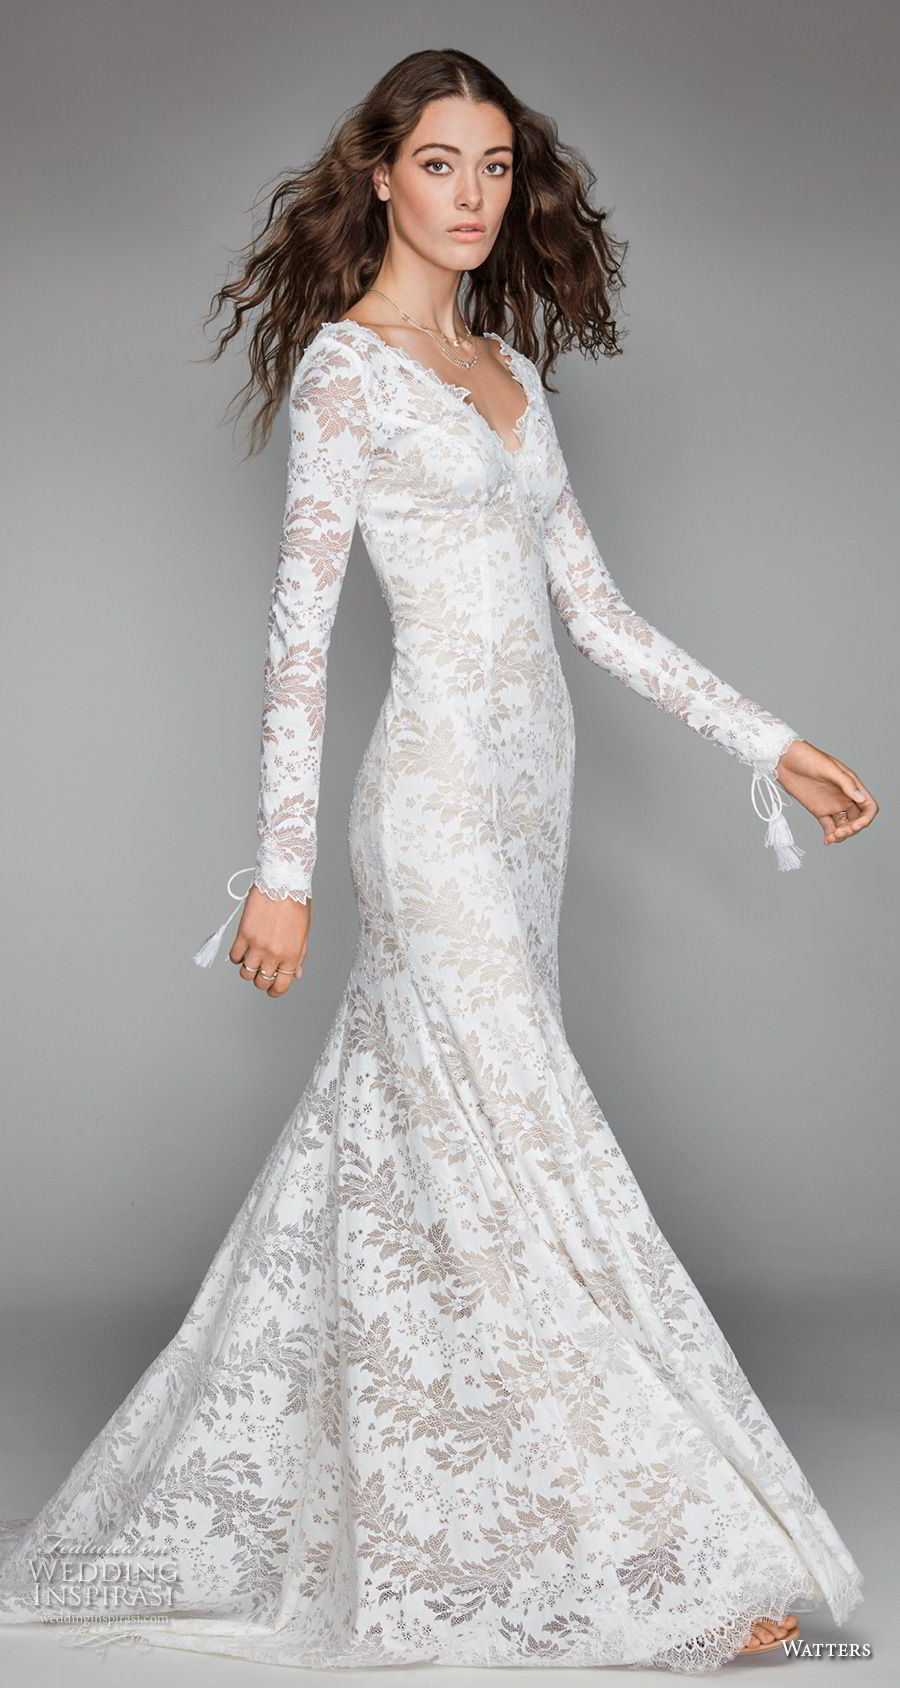 willow by watters spring 2018 long sleeves v neck full embellishment elegant fit and flare wedding dress low scoop back sweep train (4) mv